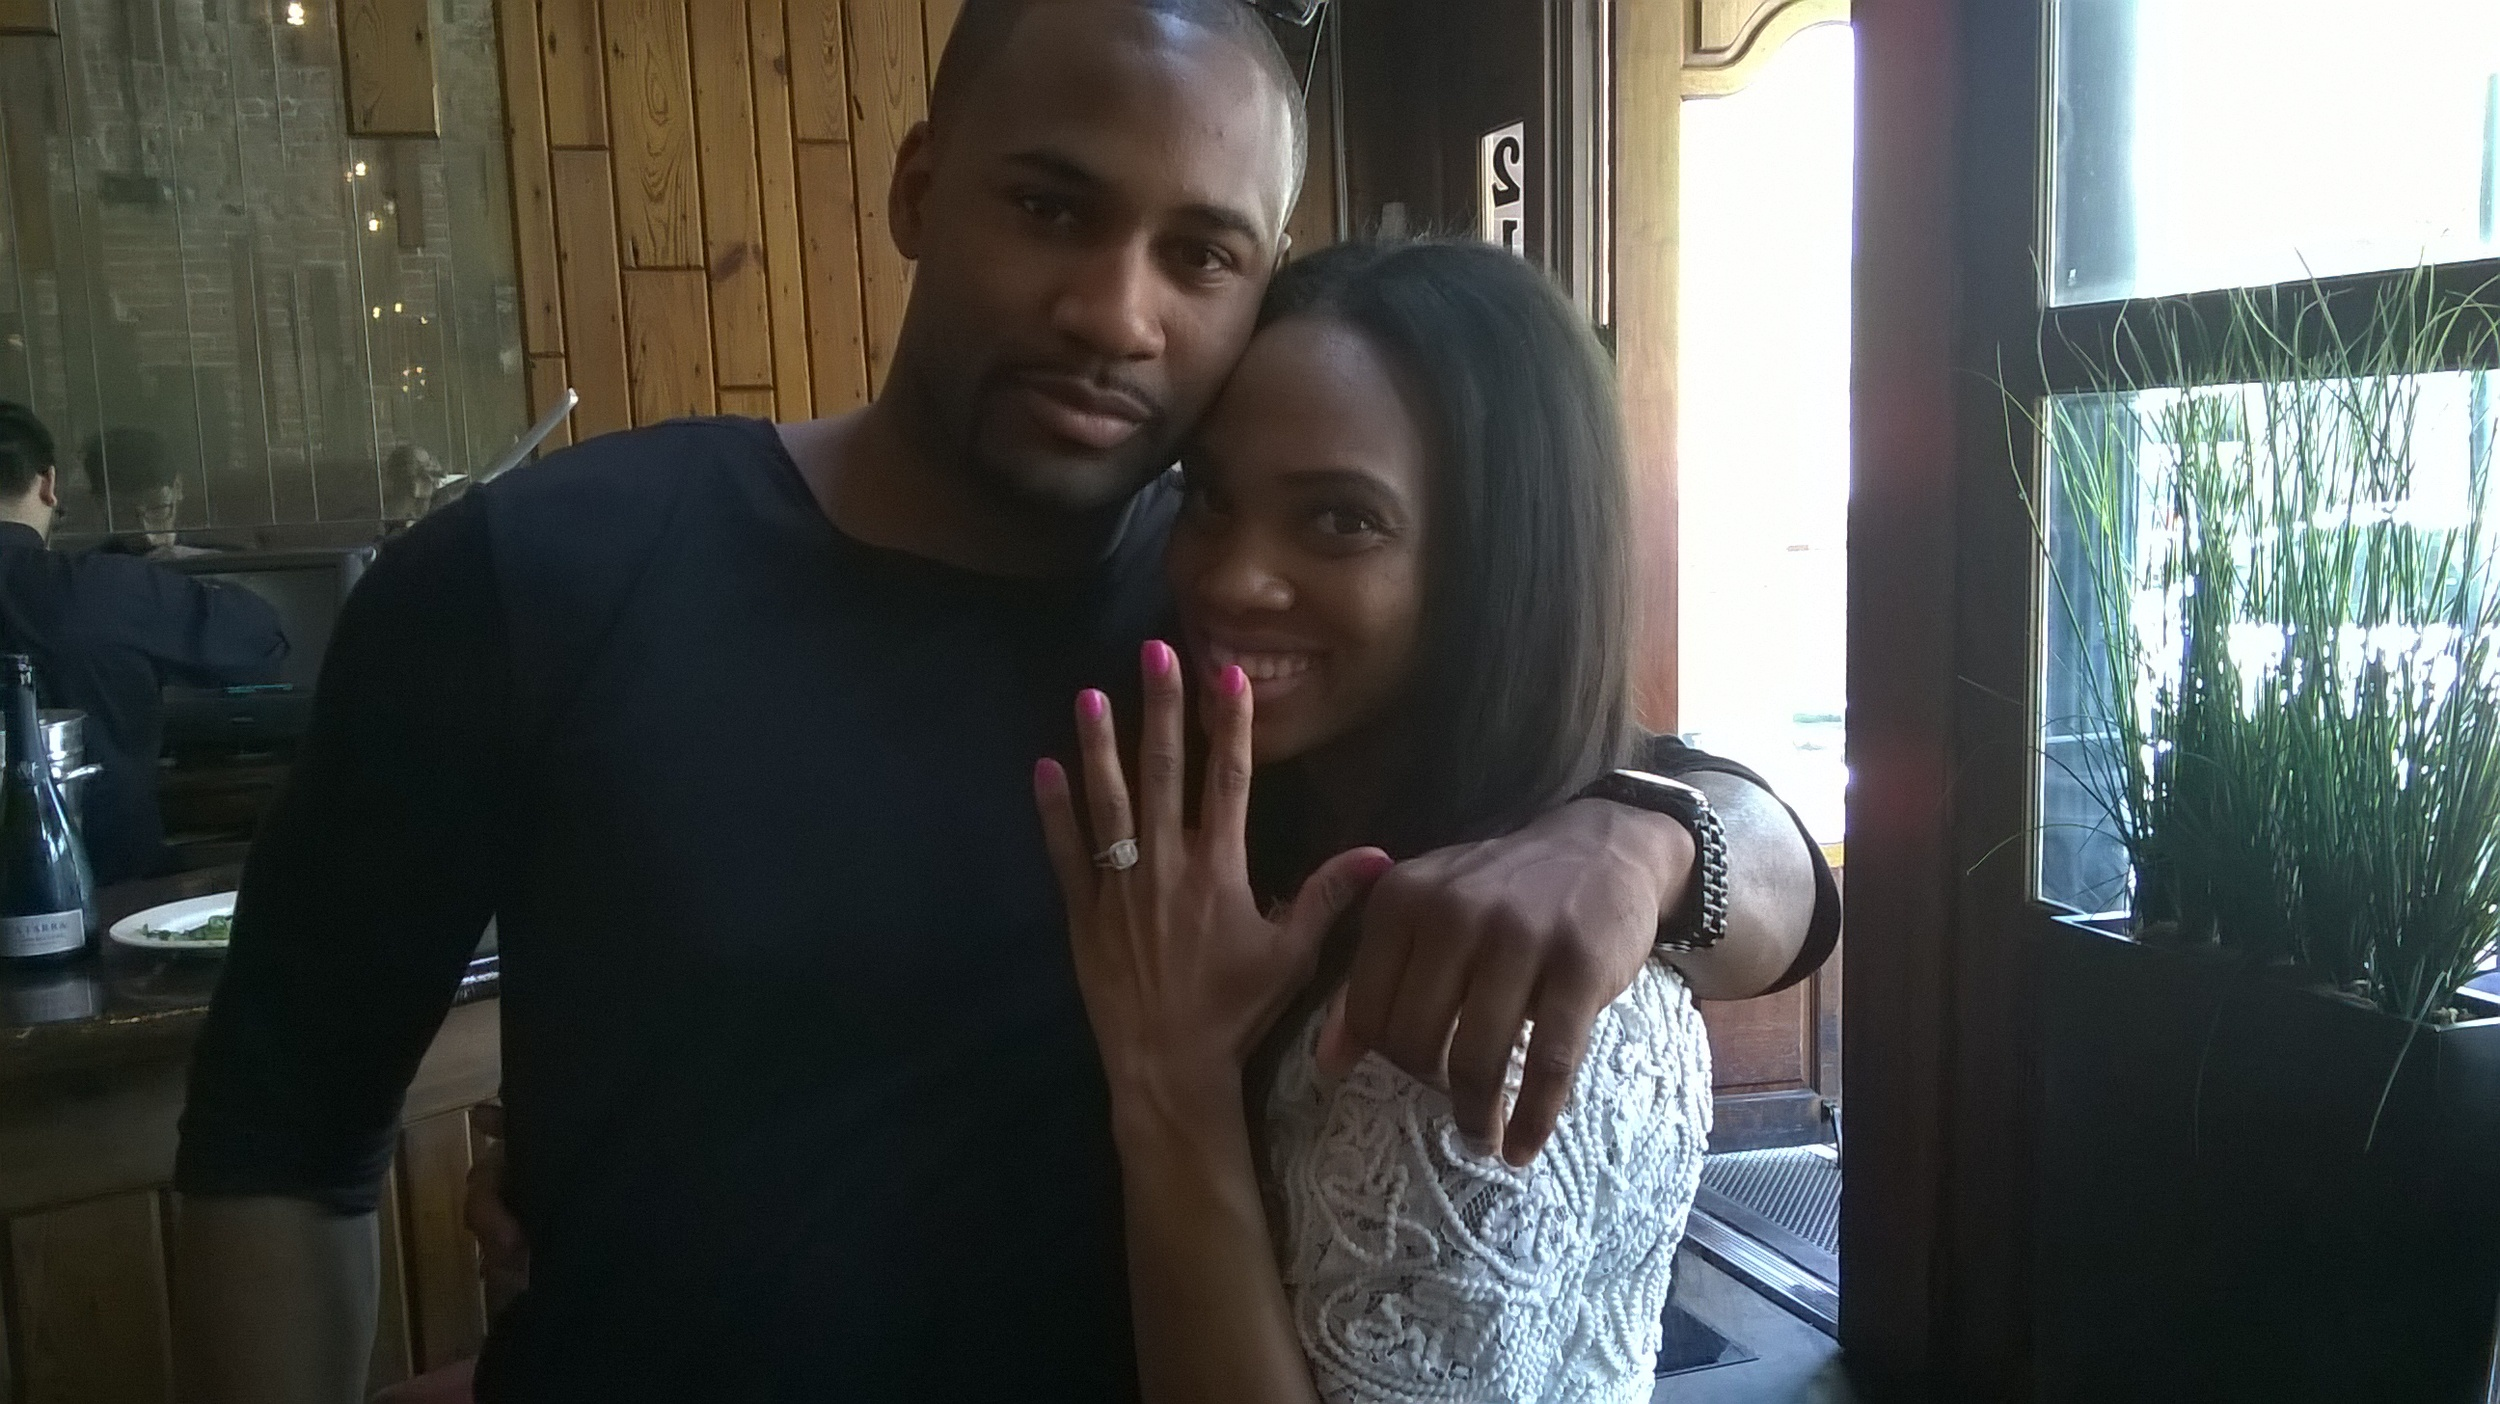 Brandon got down on one knee and asked Tara to marry him.  SHE SAID YESSSS!!!